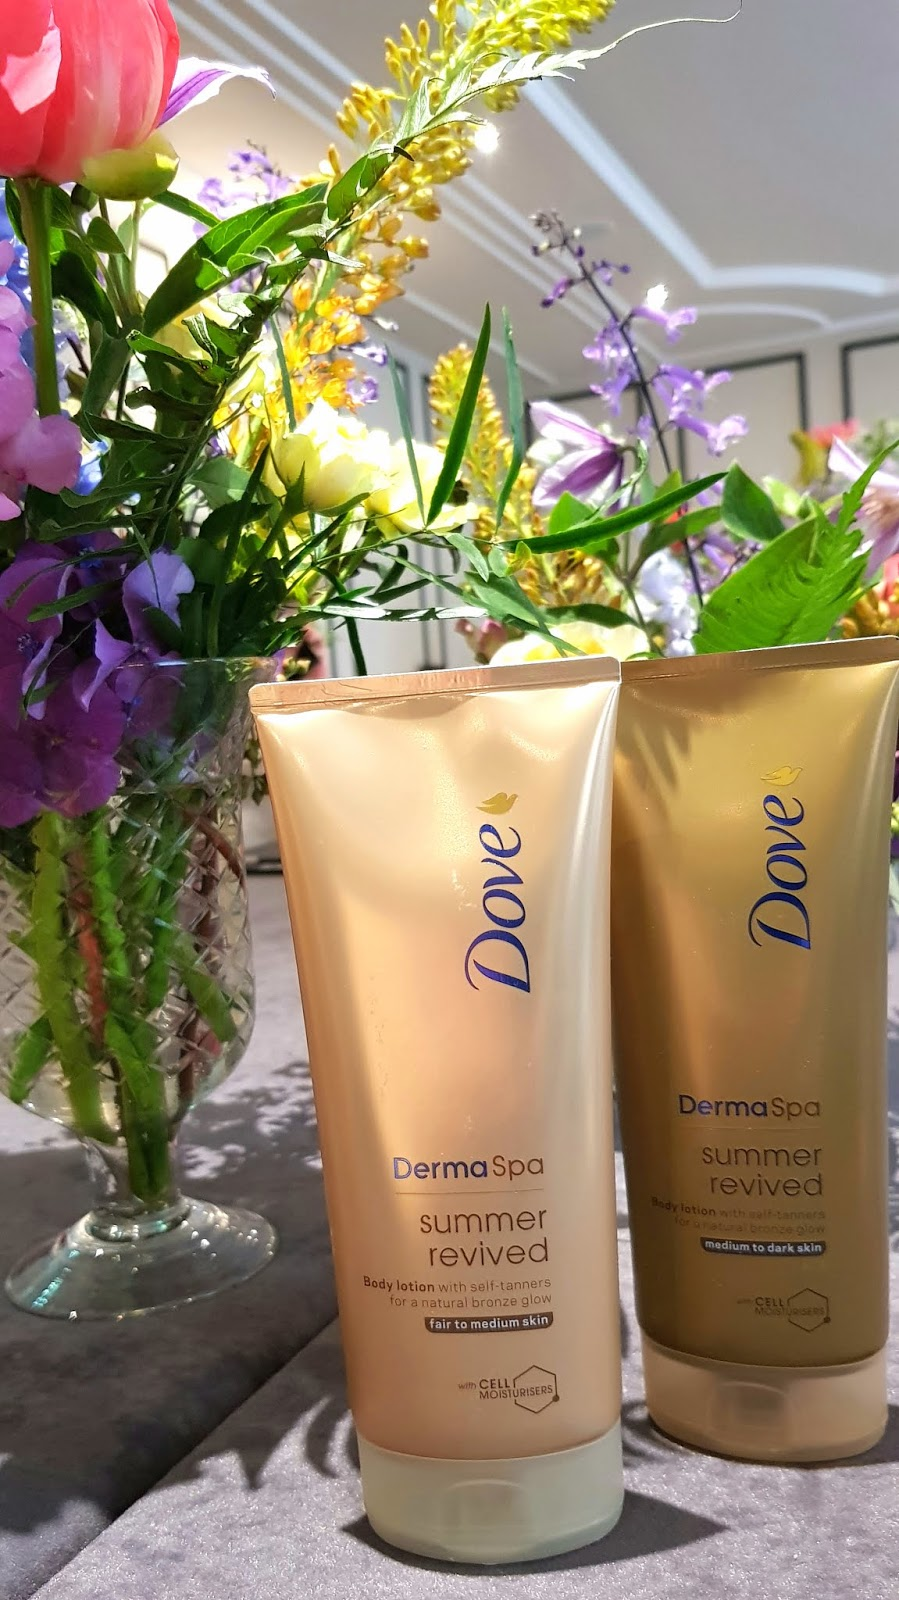 Dove DermaSpa Summer Revived gradual tanners next to beautiful summer flowers